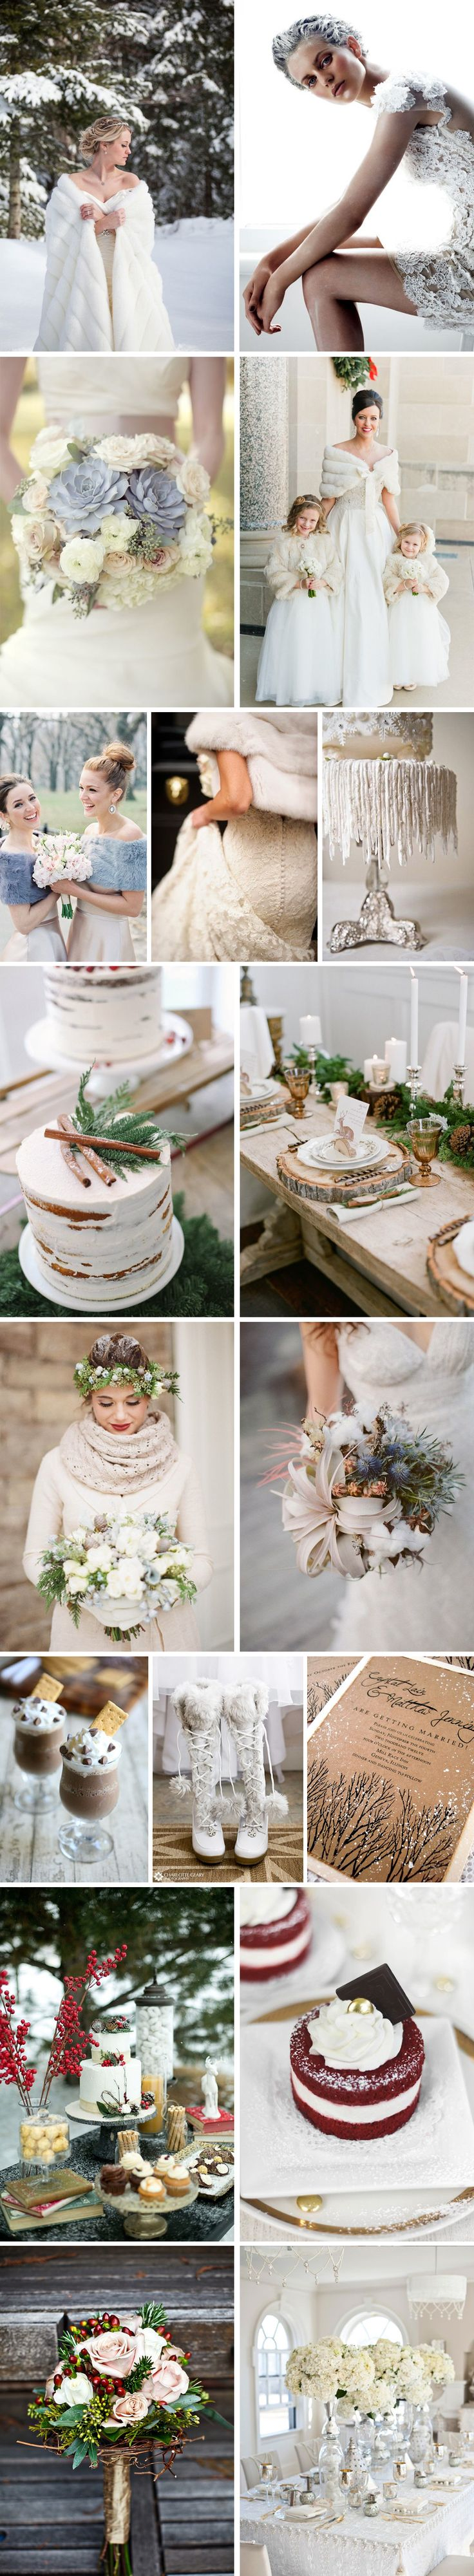 Although most brides prefer the warmer months to tie the knot, there are so many reasons why a winter wedding is really an awesome thing. Let's summarize: beautiful snowy landscape, warm candles, delicious hot cocoa for dessert, warm wraps around your dress, and cute winter wedding boots. Check out this glamorous winter wedding inspiration to get you thinking about your own winter wonderland wedding